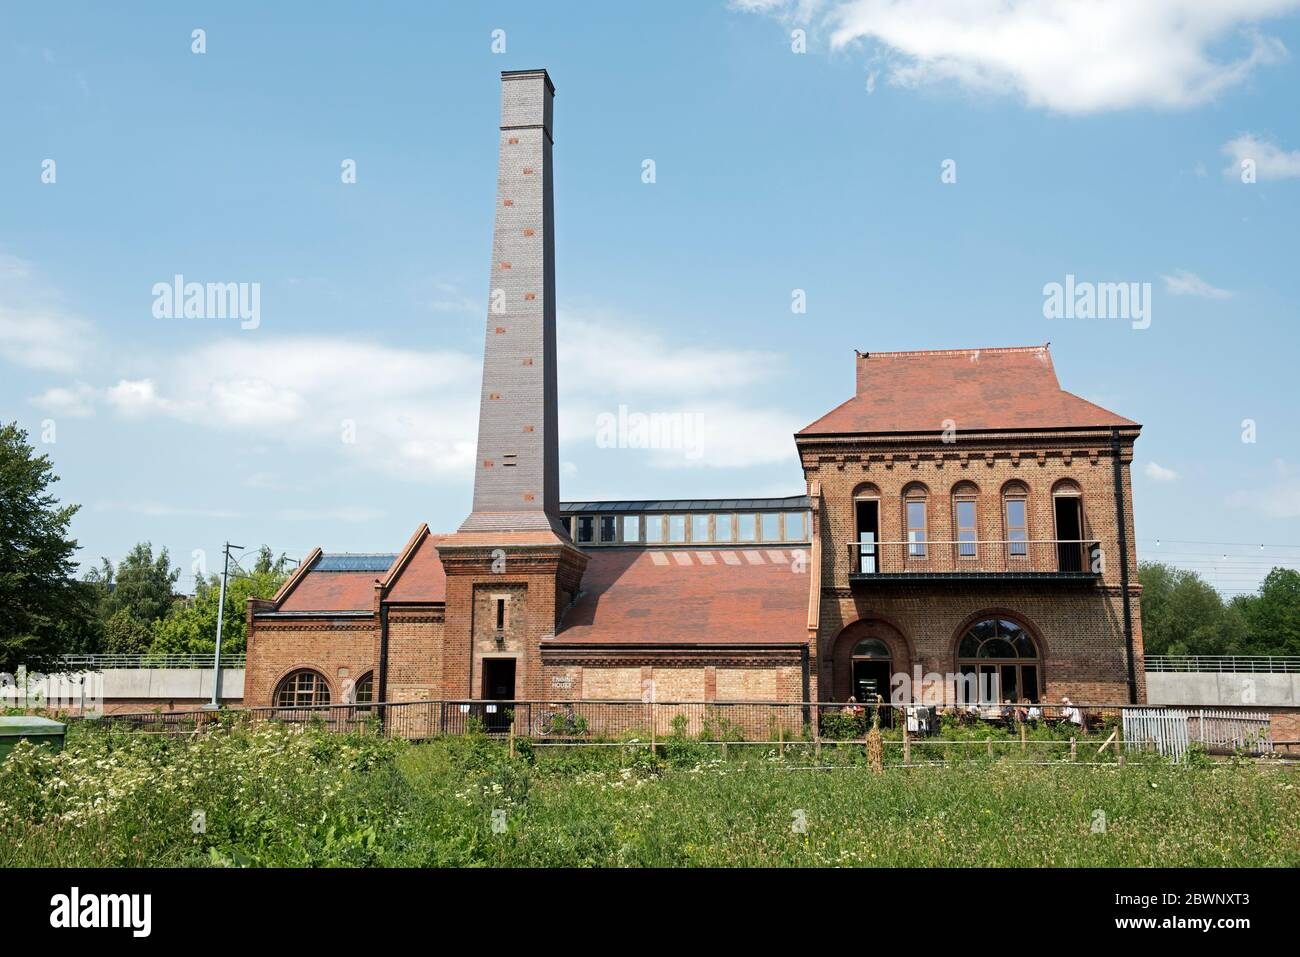 Marine Engine House formally Ferry Lane Pumping Station with 24 meter high Swift Tower, Walthamstow Wetlands London Borough of Waltham Forest, England Stock Photo